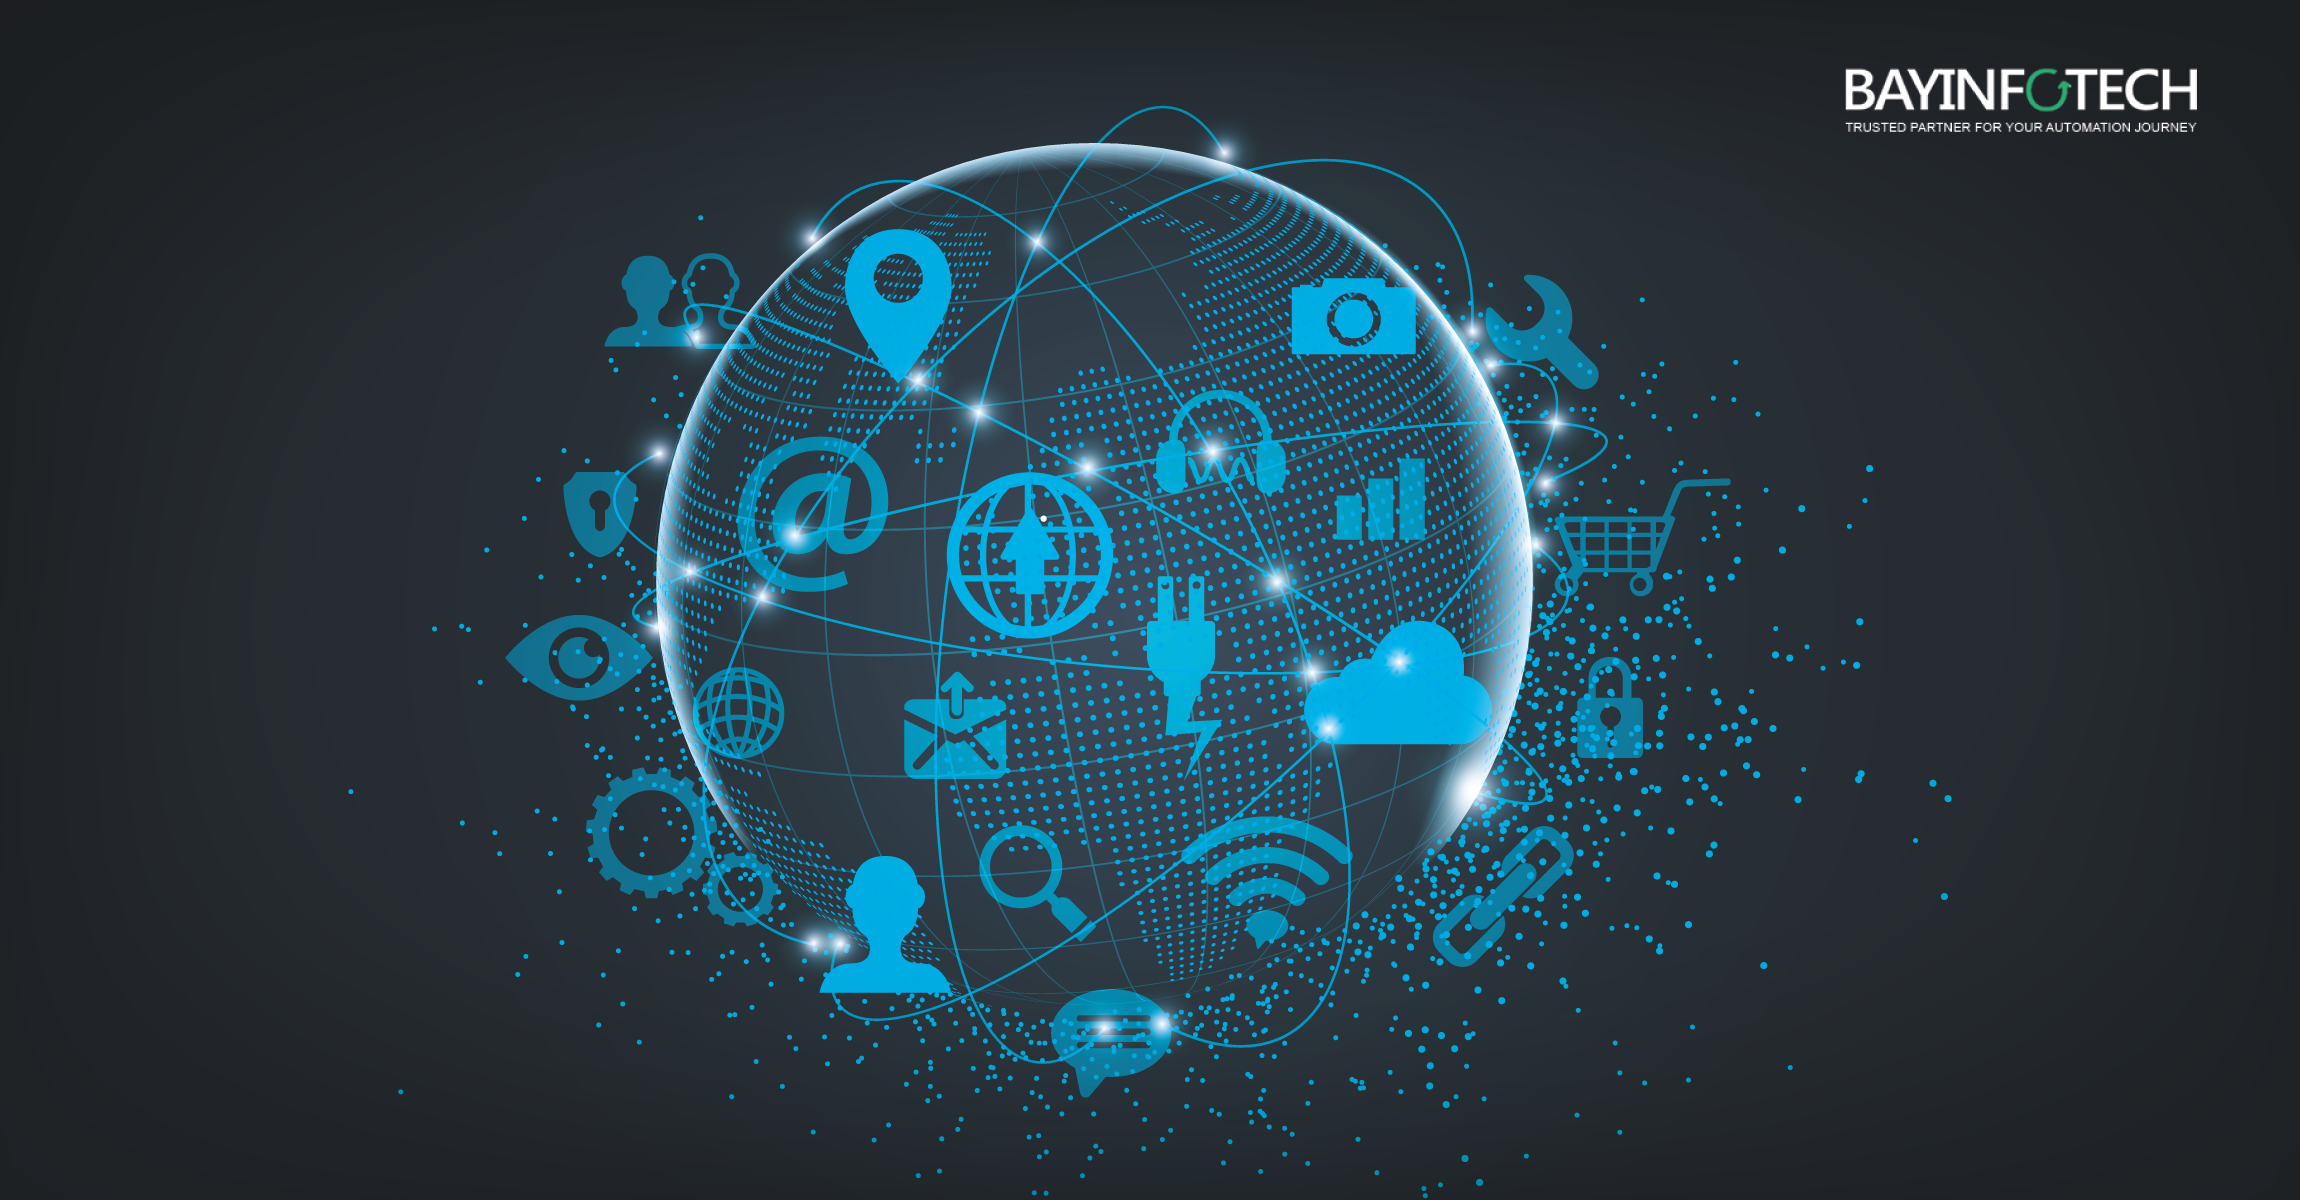 Why is intent-based networking important for IoT?